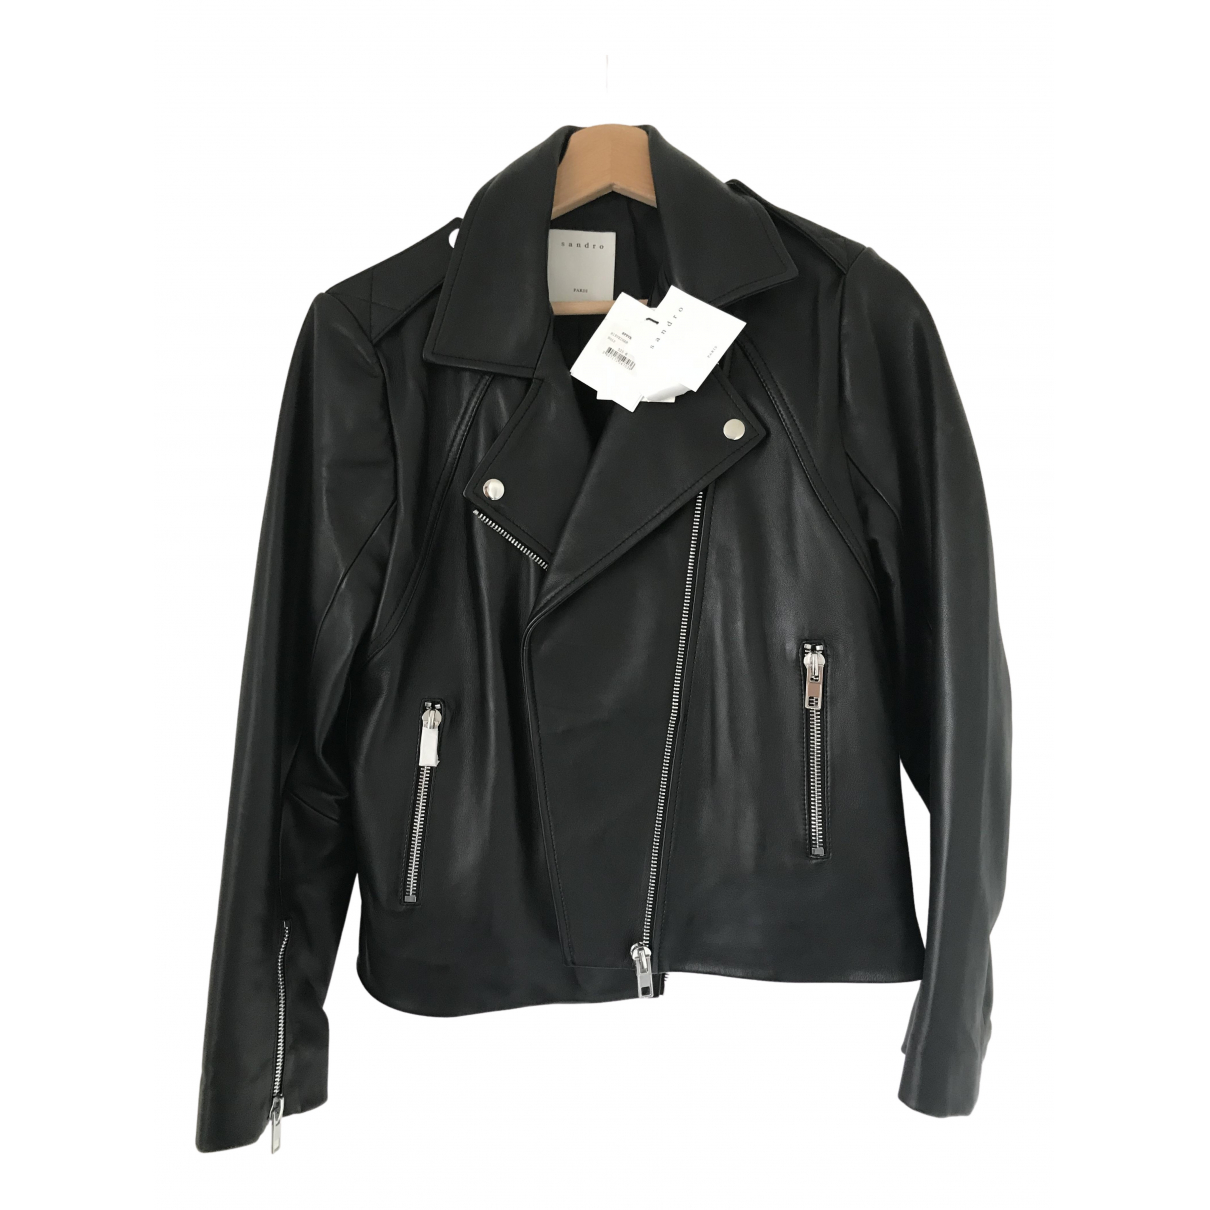 Sandro Fall Winter 2019 Black Leather Leather jacket for Women 40 FR